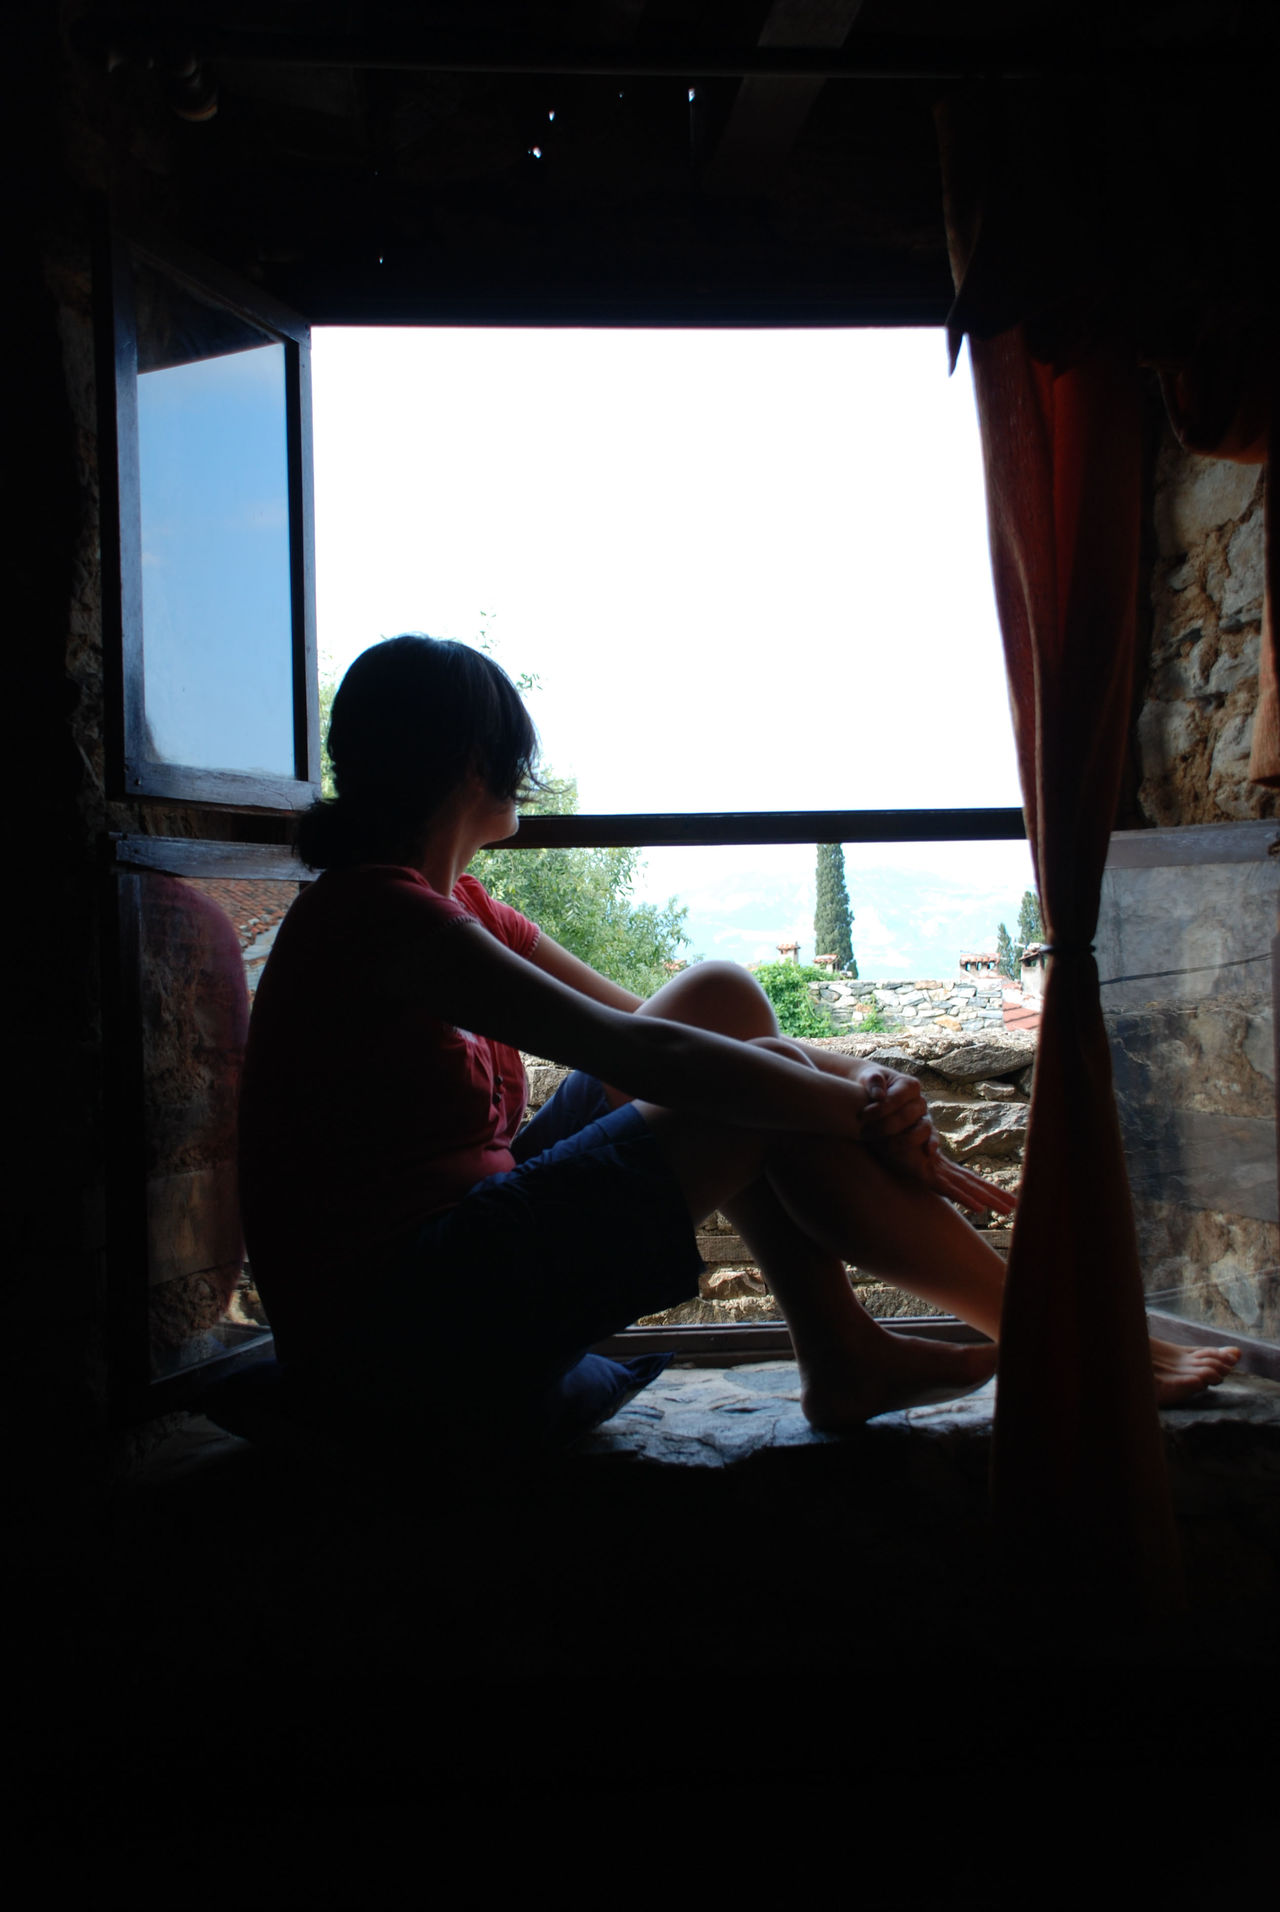 Looking out Adult Bursa / Turkey Cumalikizik Day Full Length Indoors  Looking Looking Out Of The Window One Person One Woman Only Only Women People Real People Sitting Village Life Window Young Adult